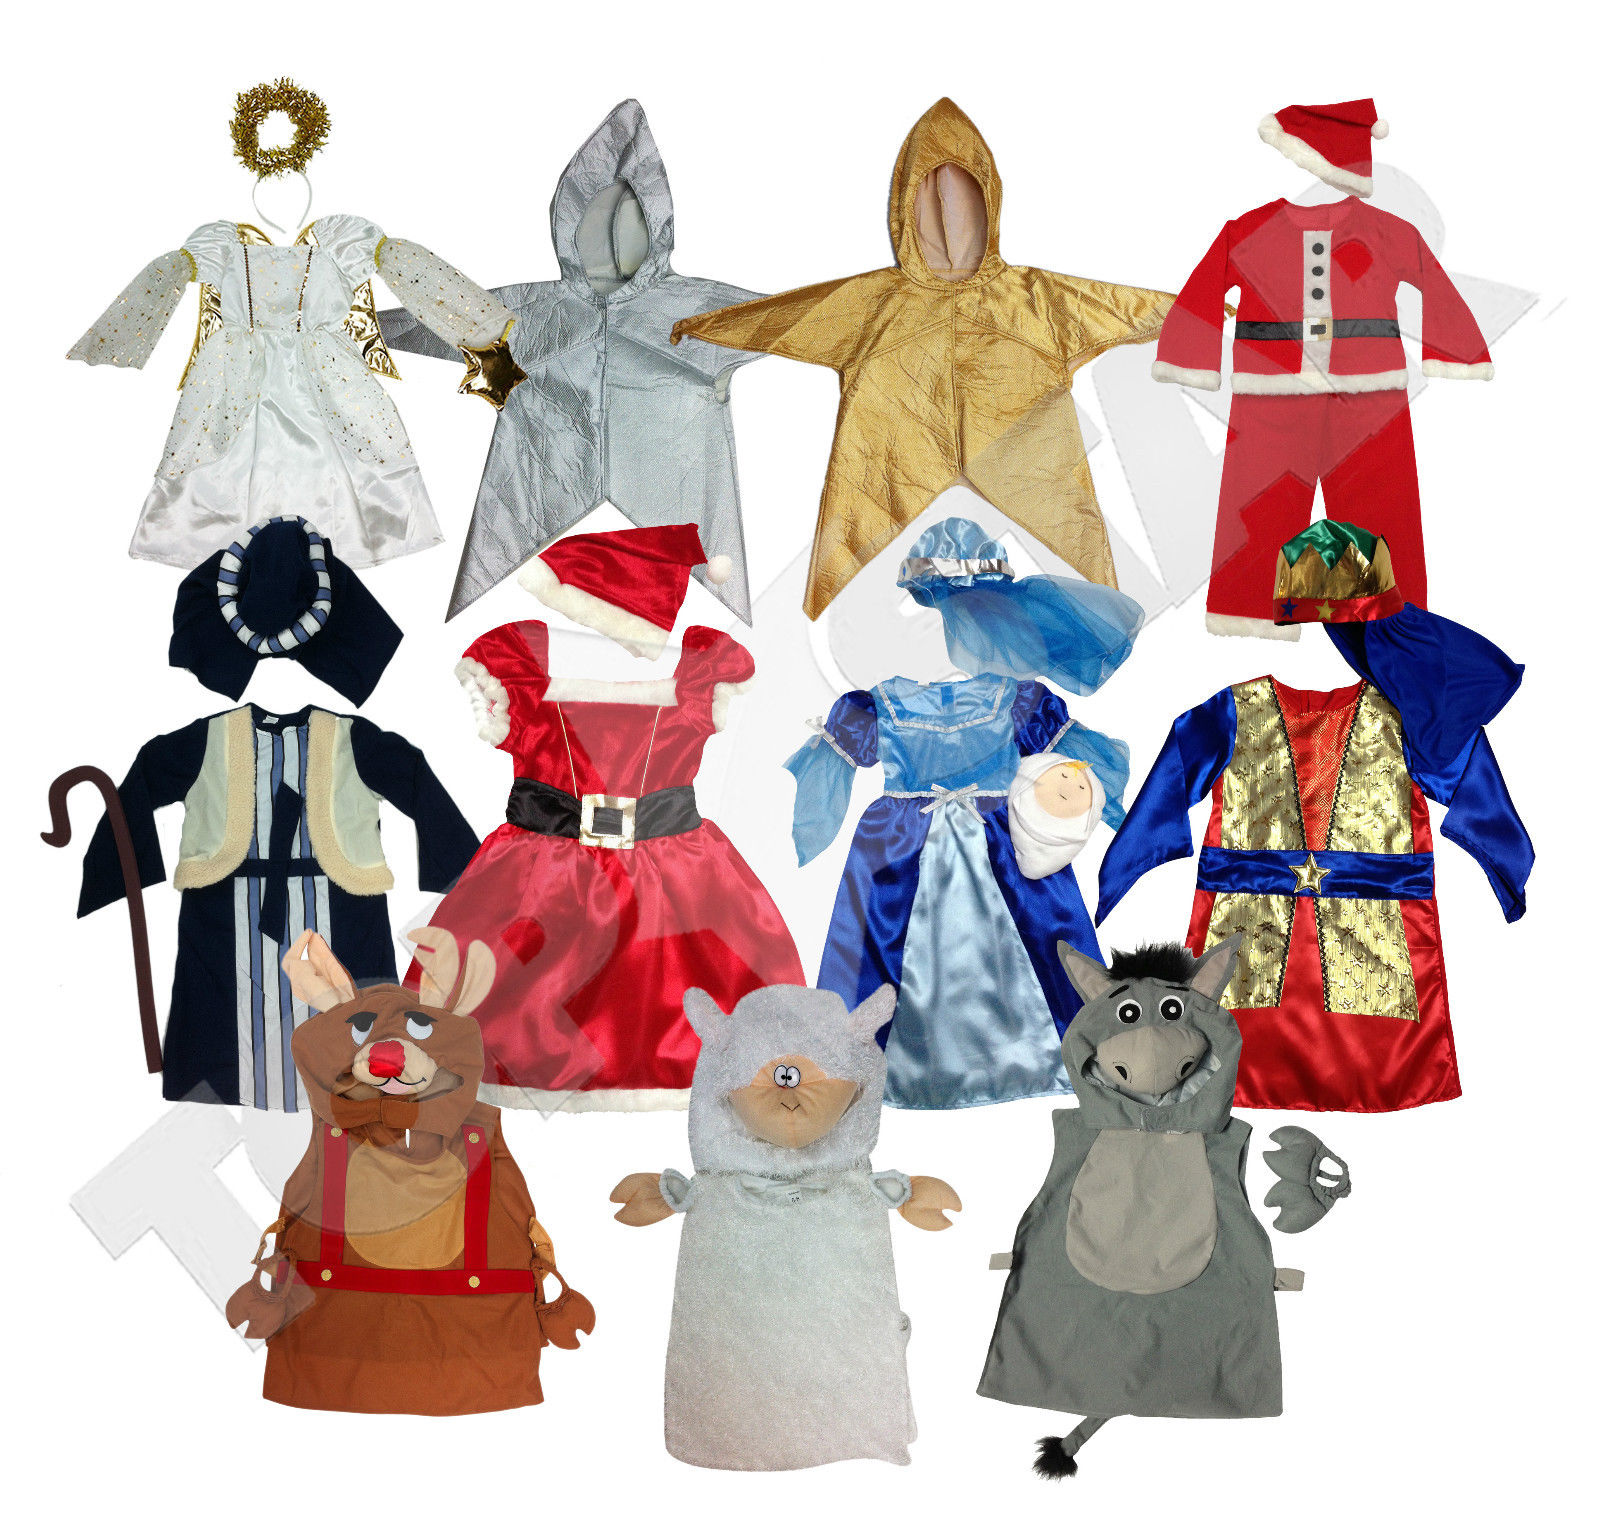 Nativity Play Costumes Christmas Fancy Dress Kids Dressup